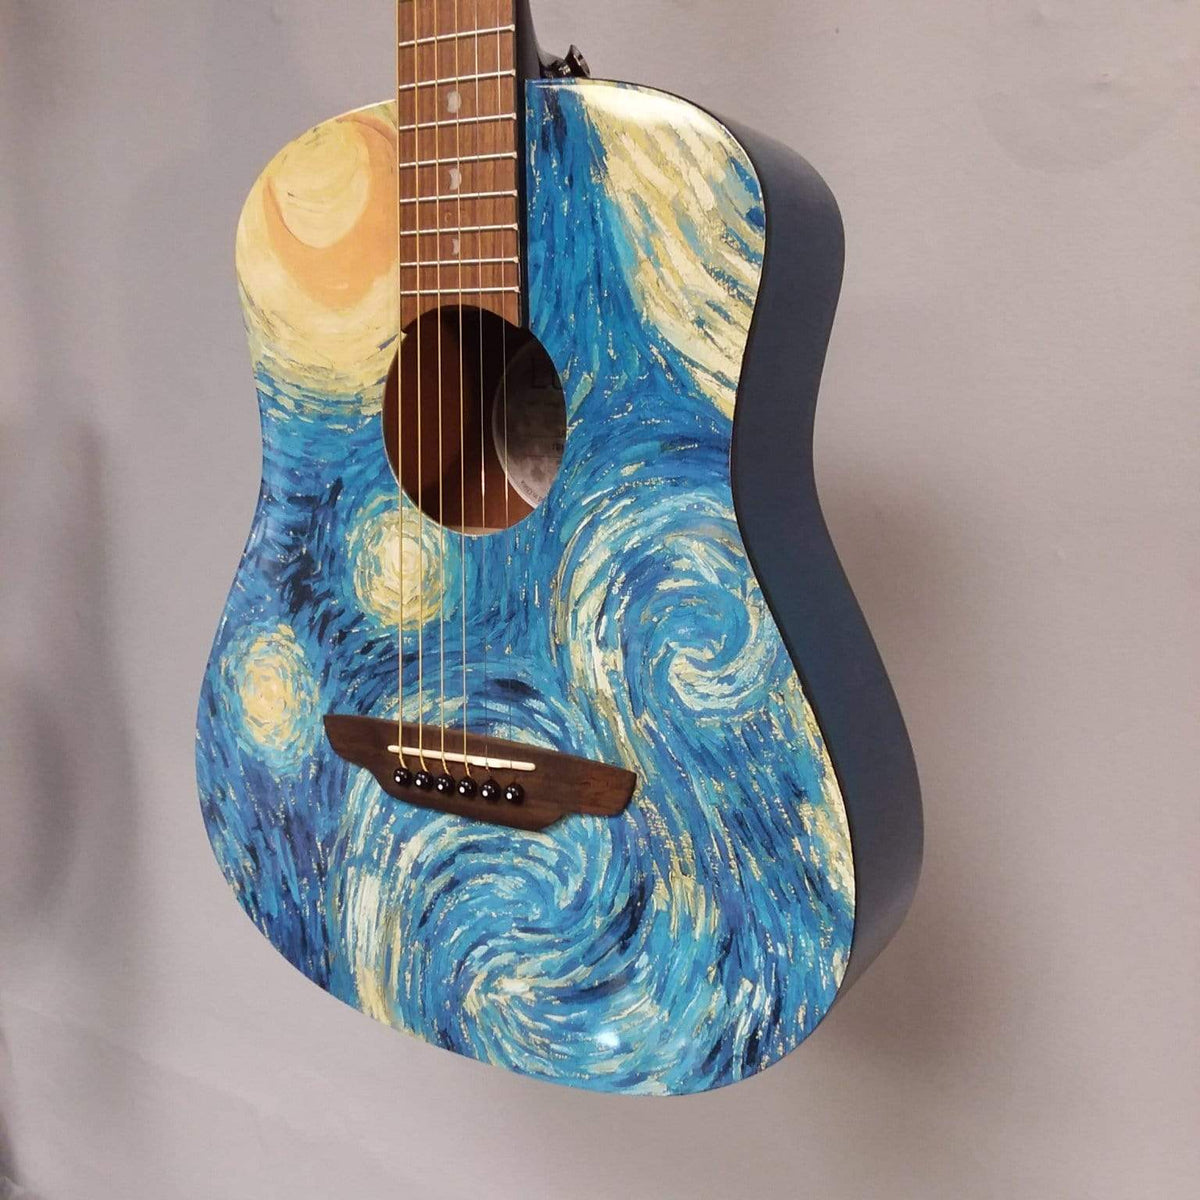 Luna GUITARS - ACOUSTIC GUITARS Luna Safari Starry Night Travel Guitar w/Bag B Stock